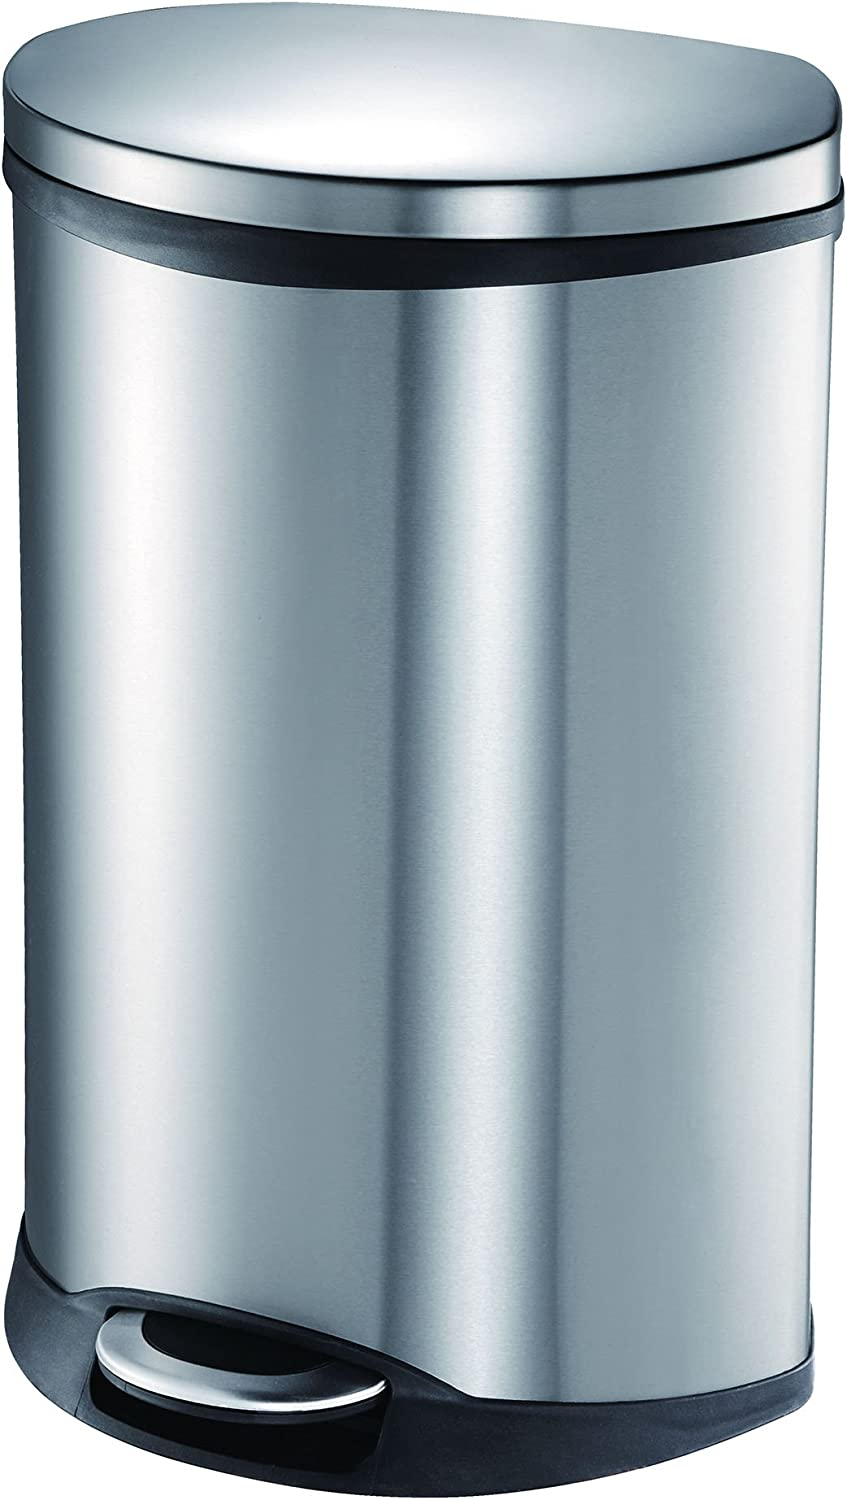 EKO 92185-1 Oblong Shell 13 Gallon Stainless Steel Step Trash Can with Lid   50 Liter Metal Waste Bin